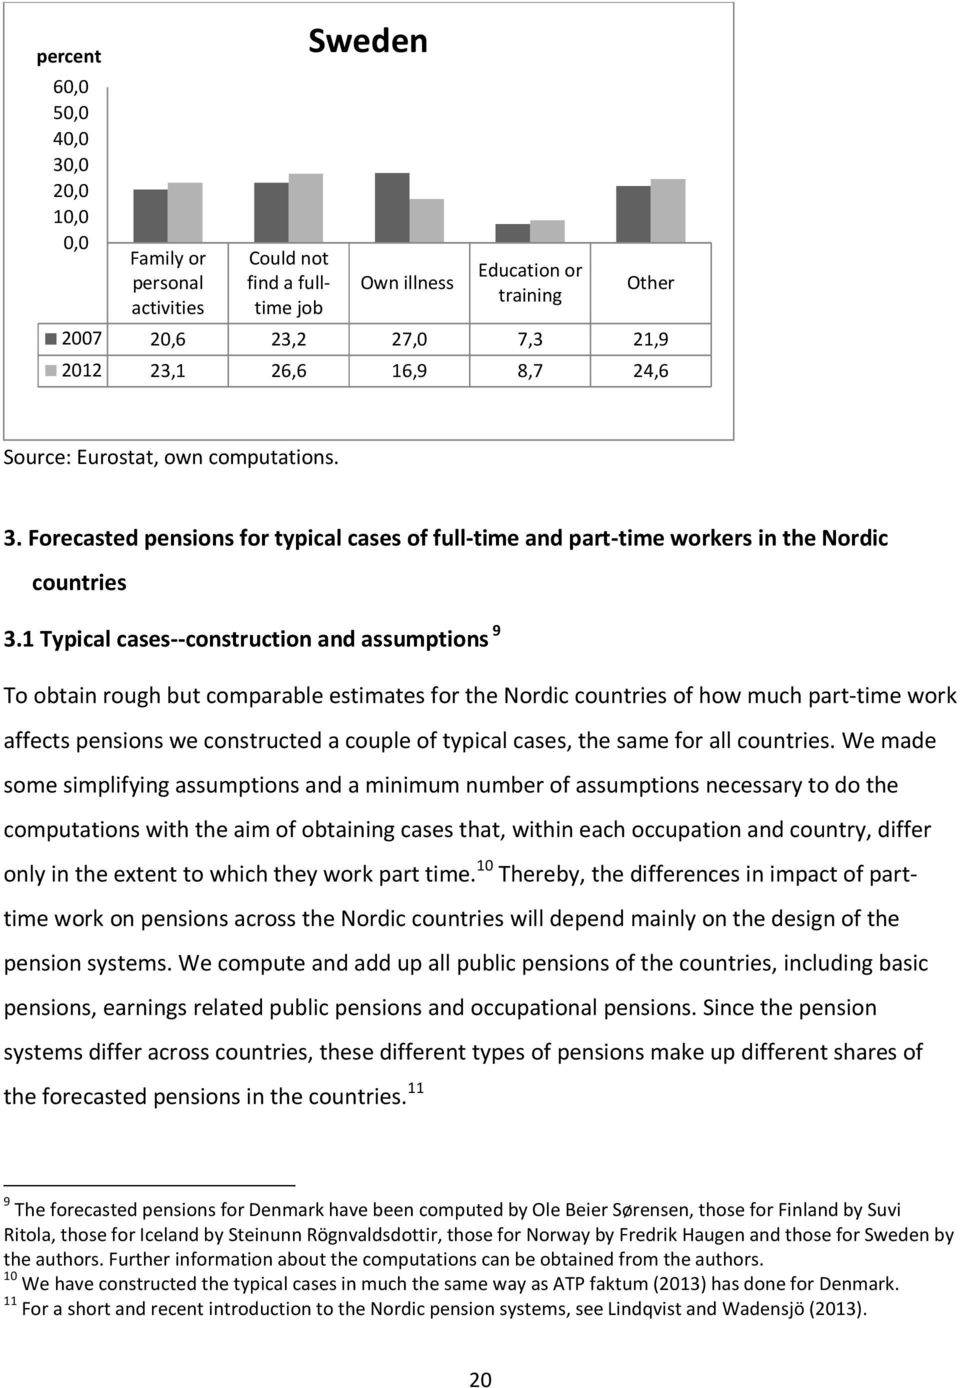 1 Typical cases--construction and assumptions 9 To obtain rough but comparable estimates for the Nordic countries of how much part-time work affects pensions we constructed a couple of typical cases,